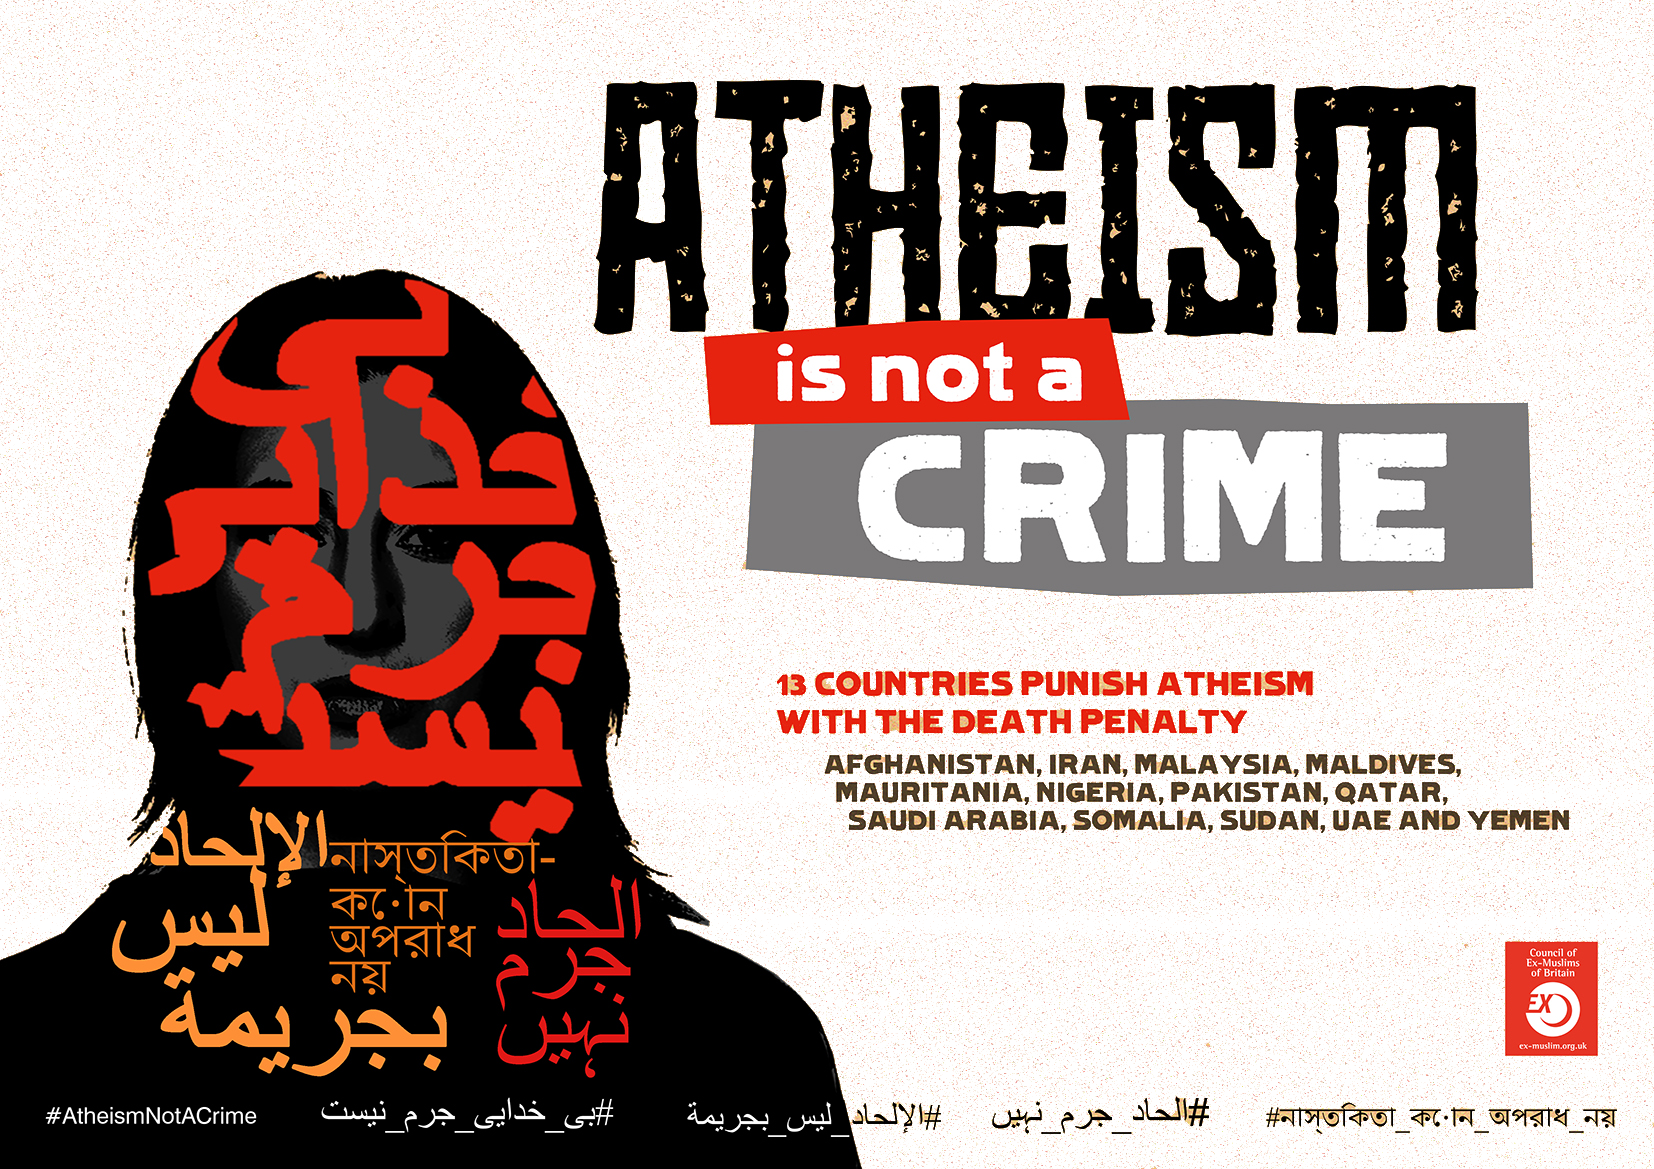 Atheism is NOT a Crime campaign